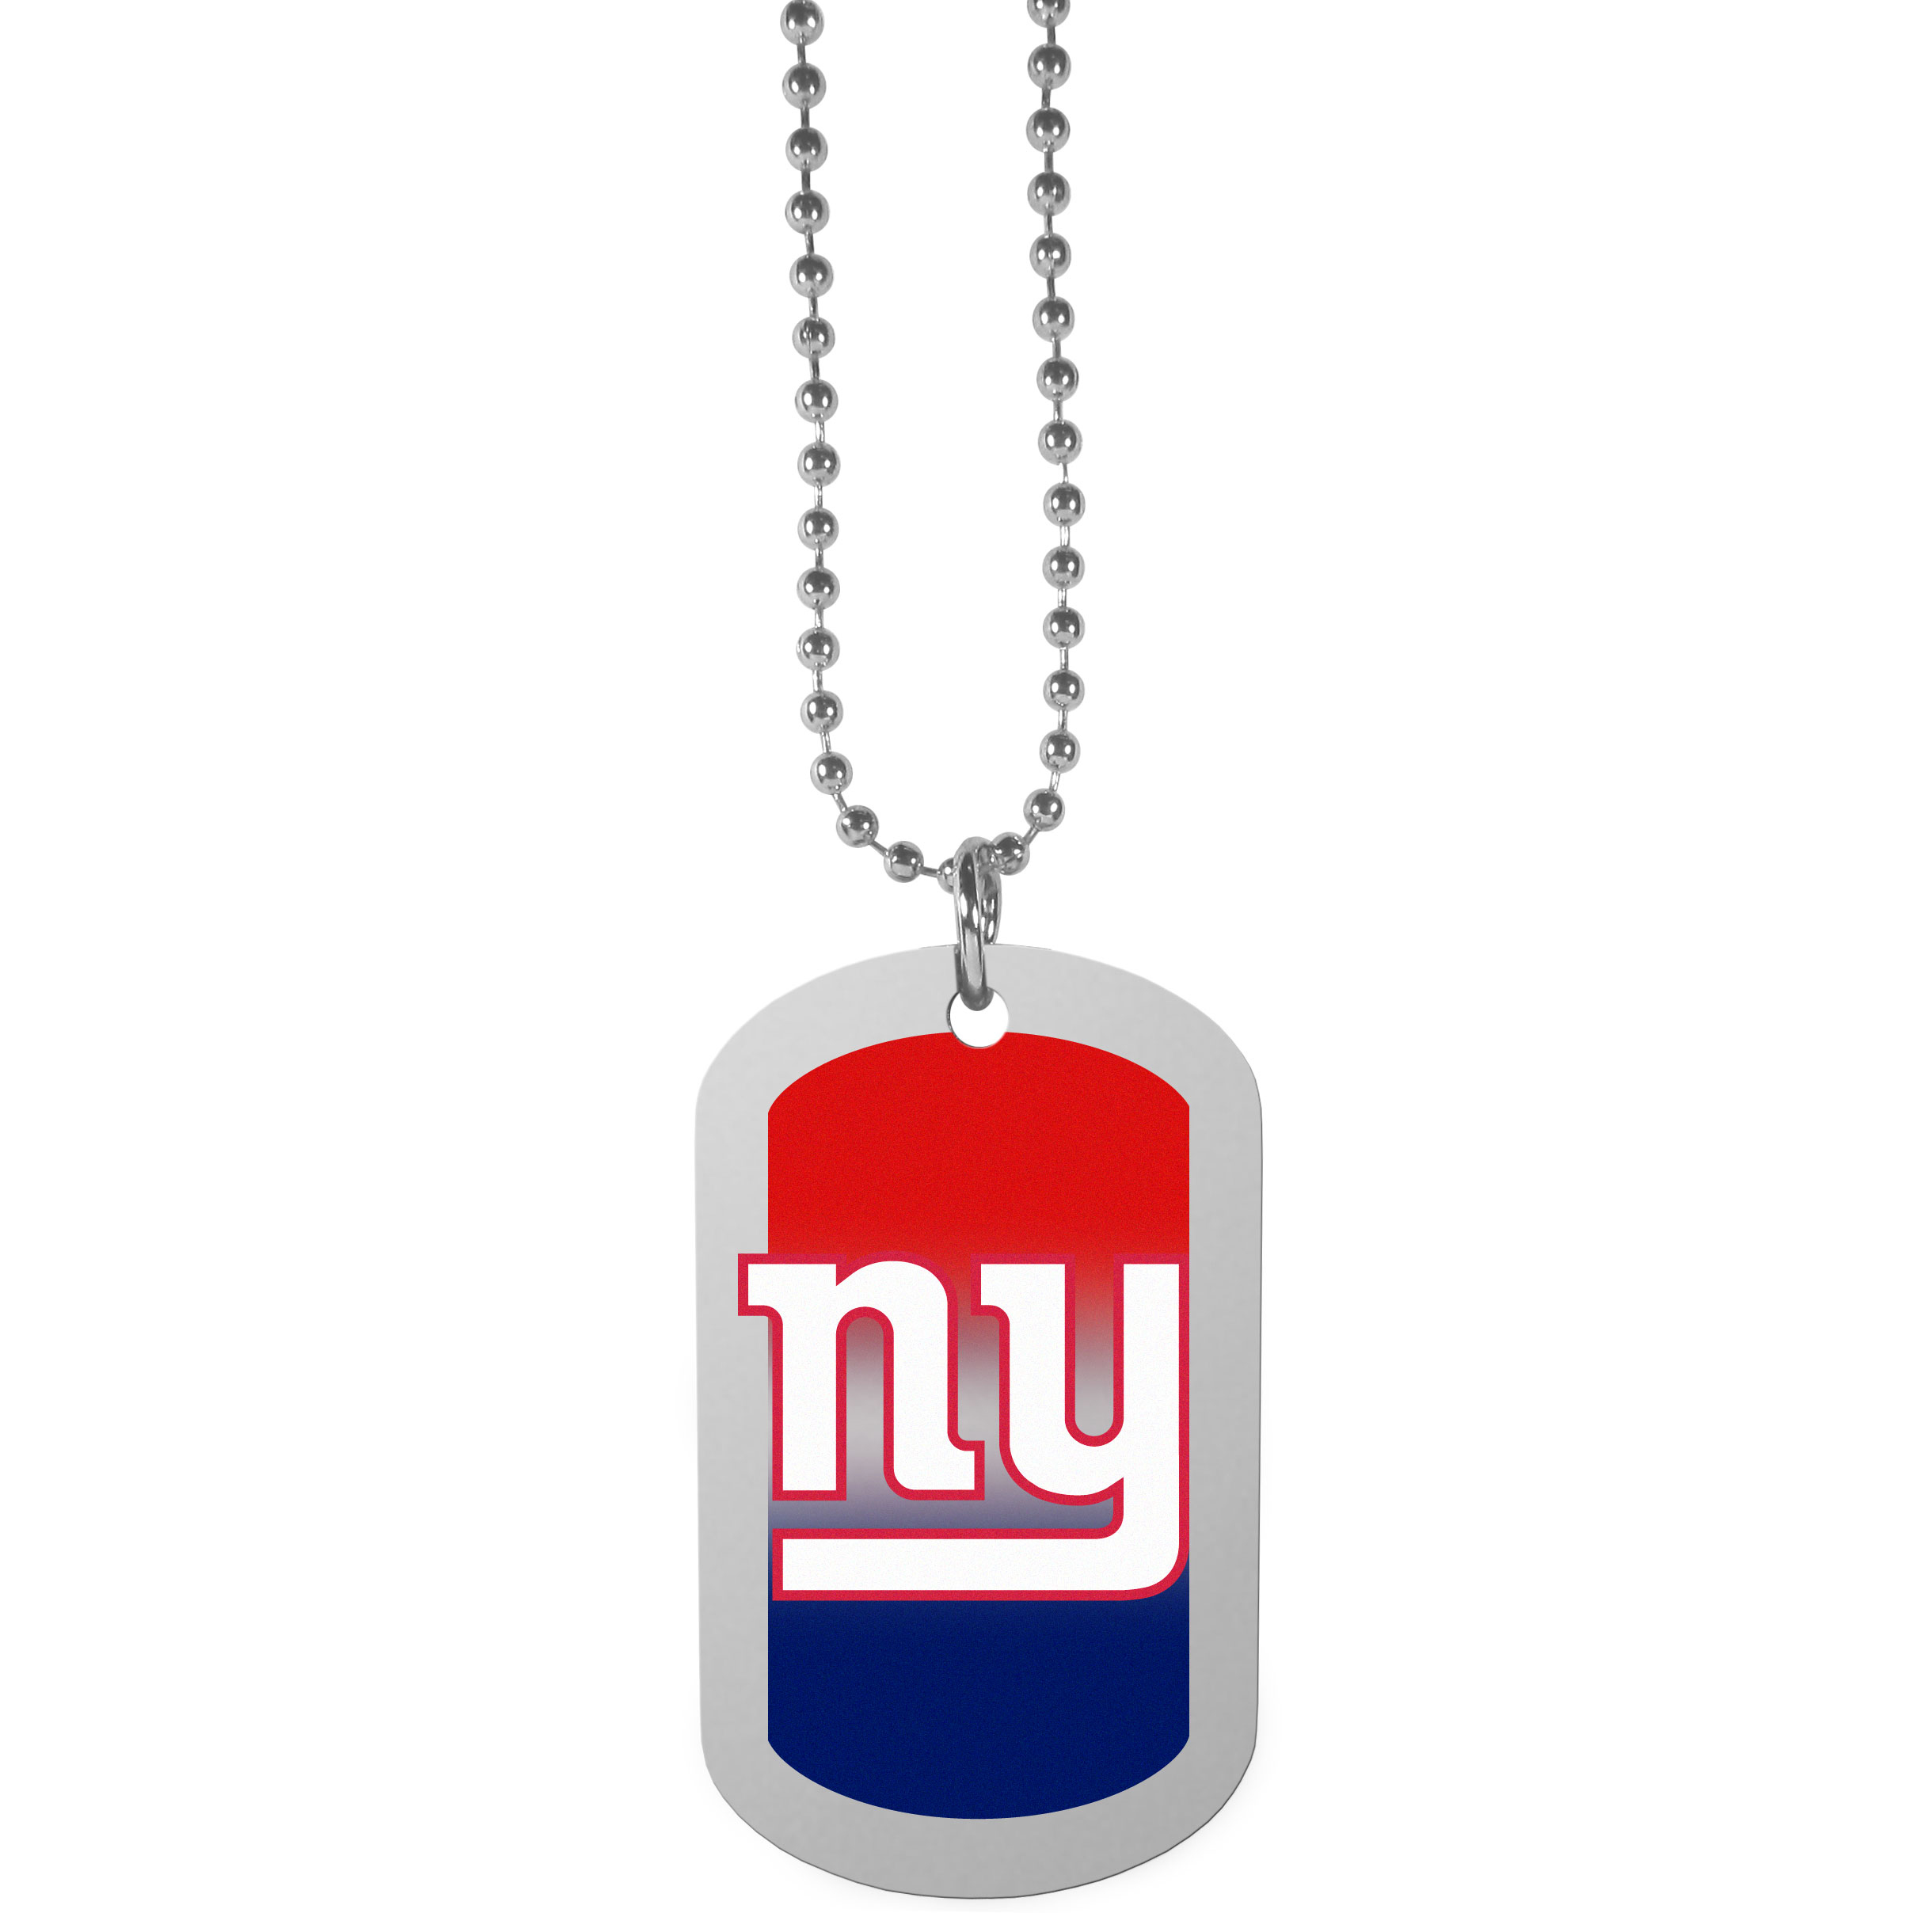 New York Giants Team Tag Necklace - Dog tag necklaces are a fashion statement that is here to stay. The sporty version of the classic tag features a gradient print in team colors featuring a full color team logo over a high polish tag to create a bold and sporty look. The tag comes on a 26 inch ball chain with a ball and joint clasp. Any New York Giants would be proud to wear this attractive fashion accessory.